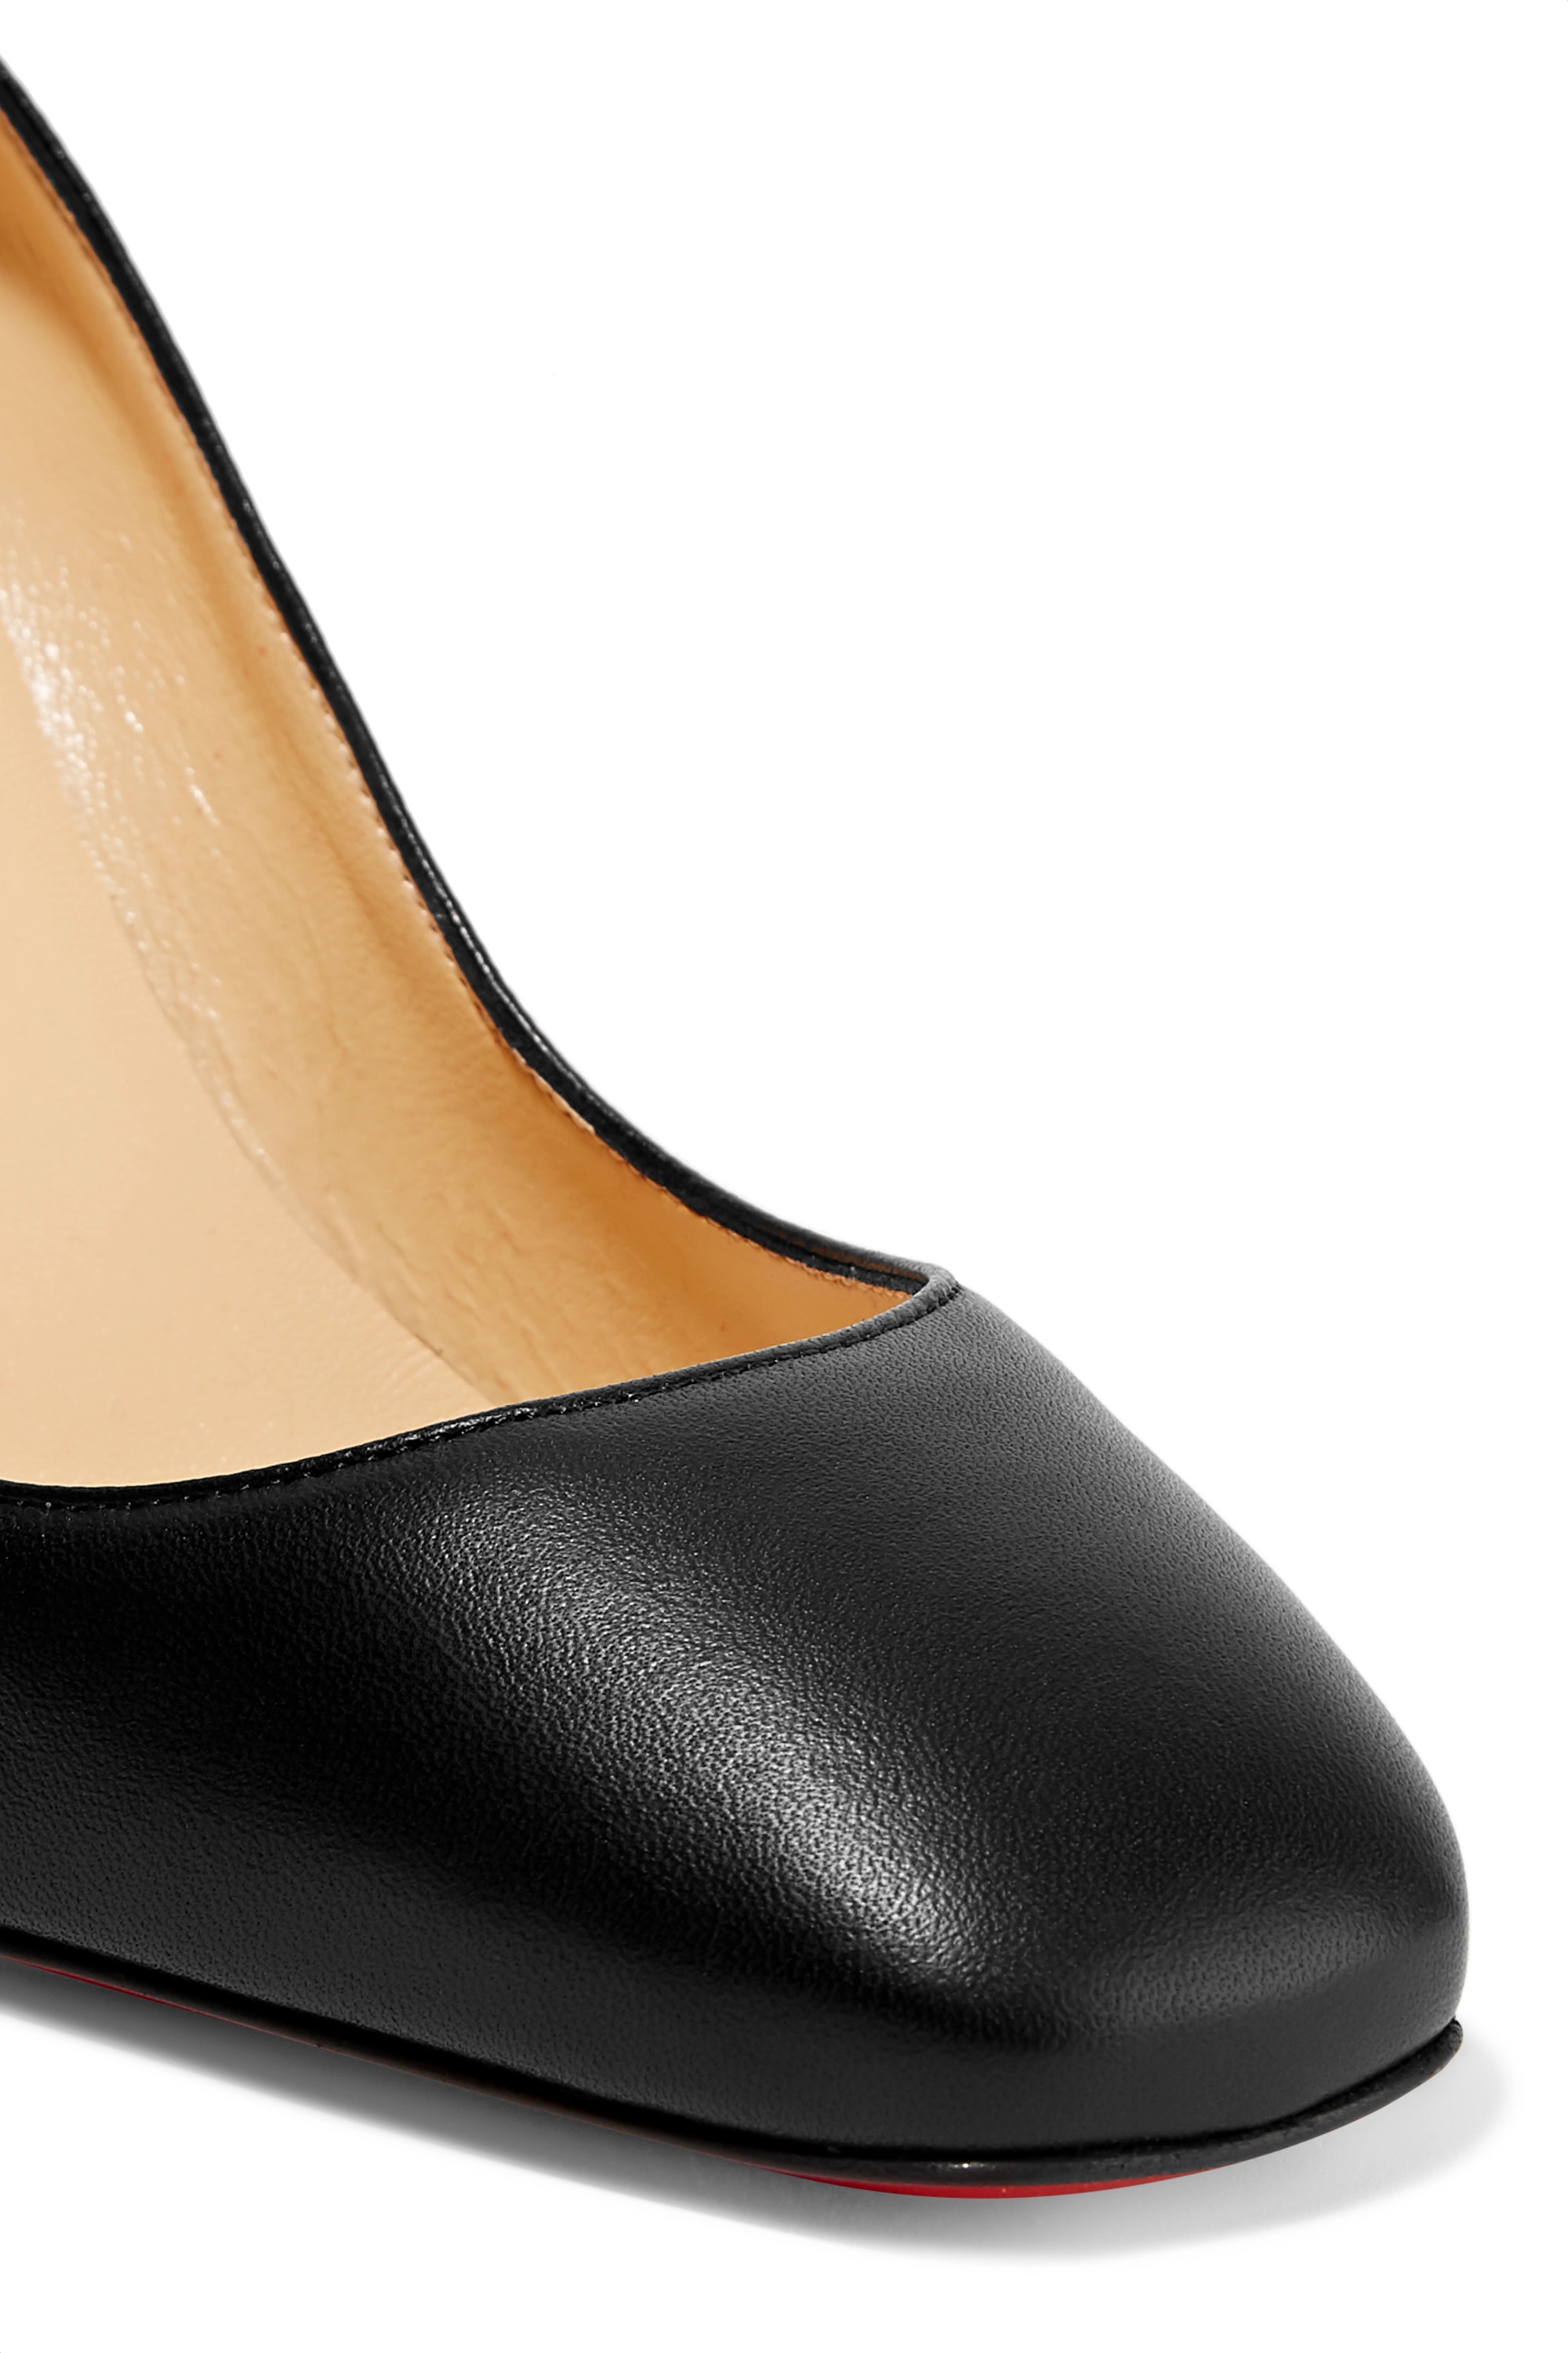 Black Donna 85 Studded Leather Pumps | Christian Louboutin